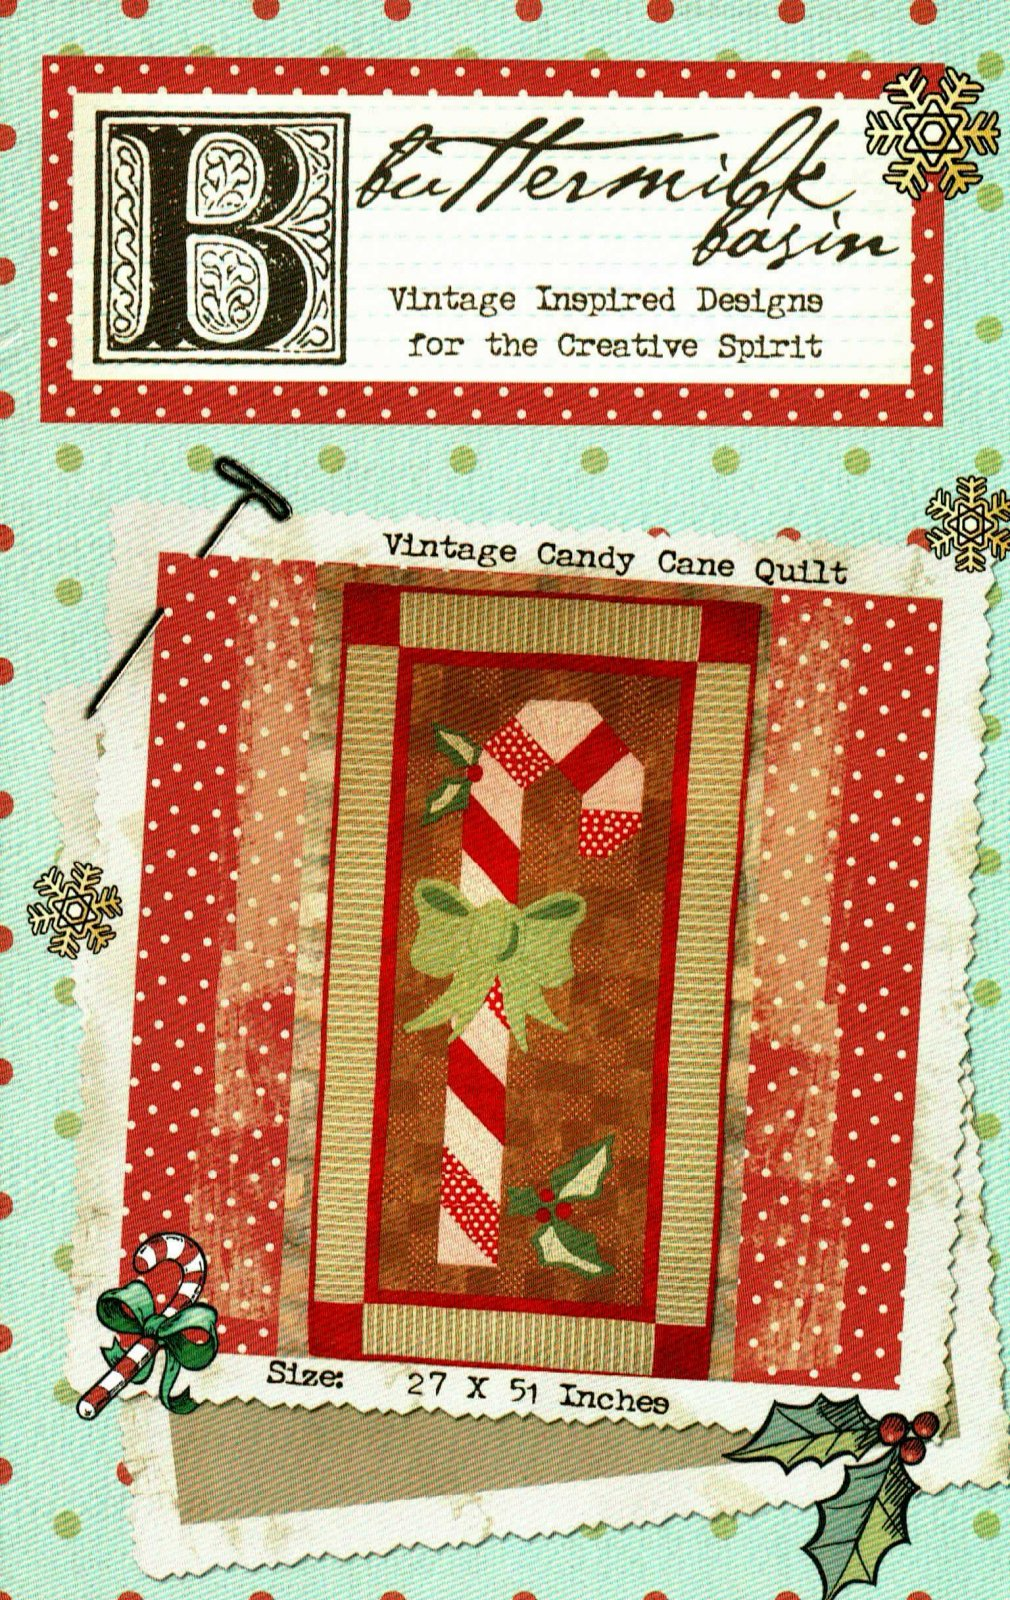 Vintage Candy Cane Quilt * Pattern